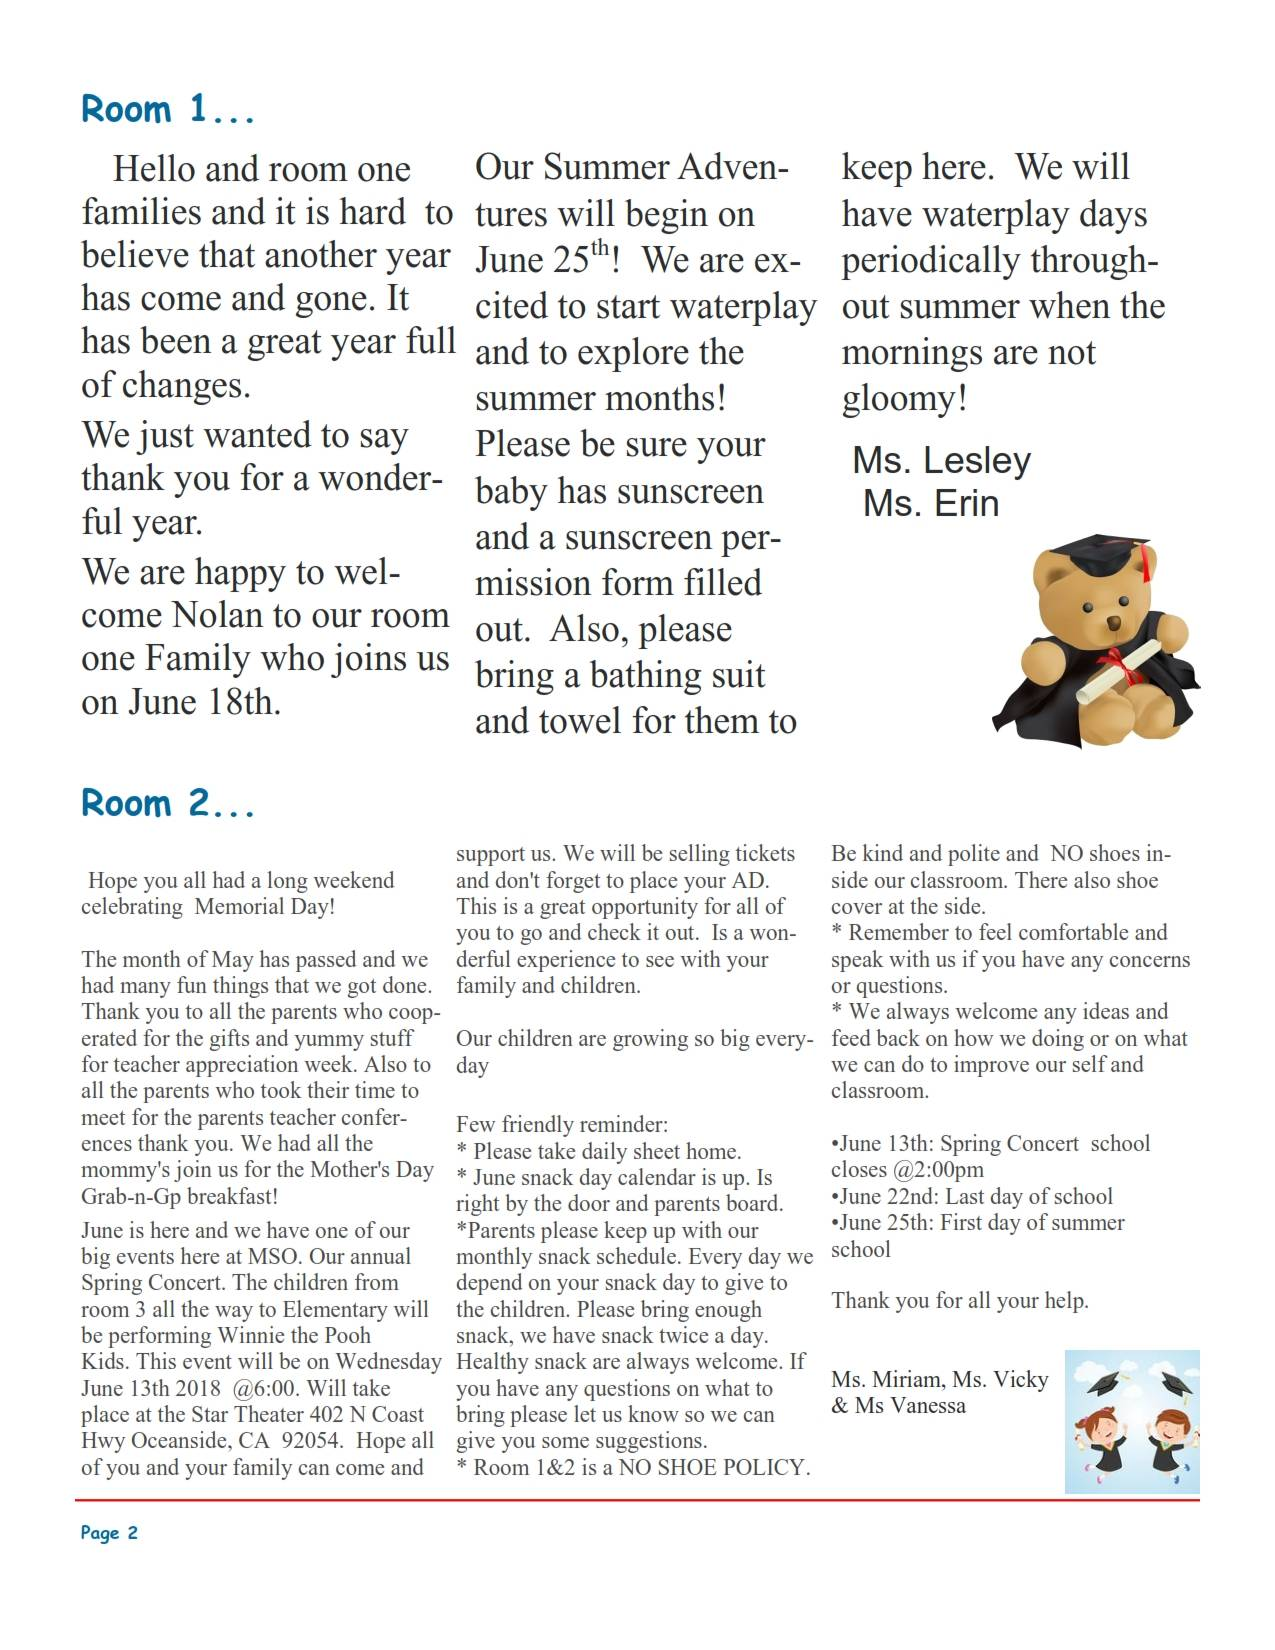 MSO June 2018 Newsletter. Room 1 and Room 2